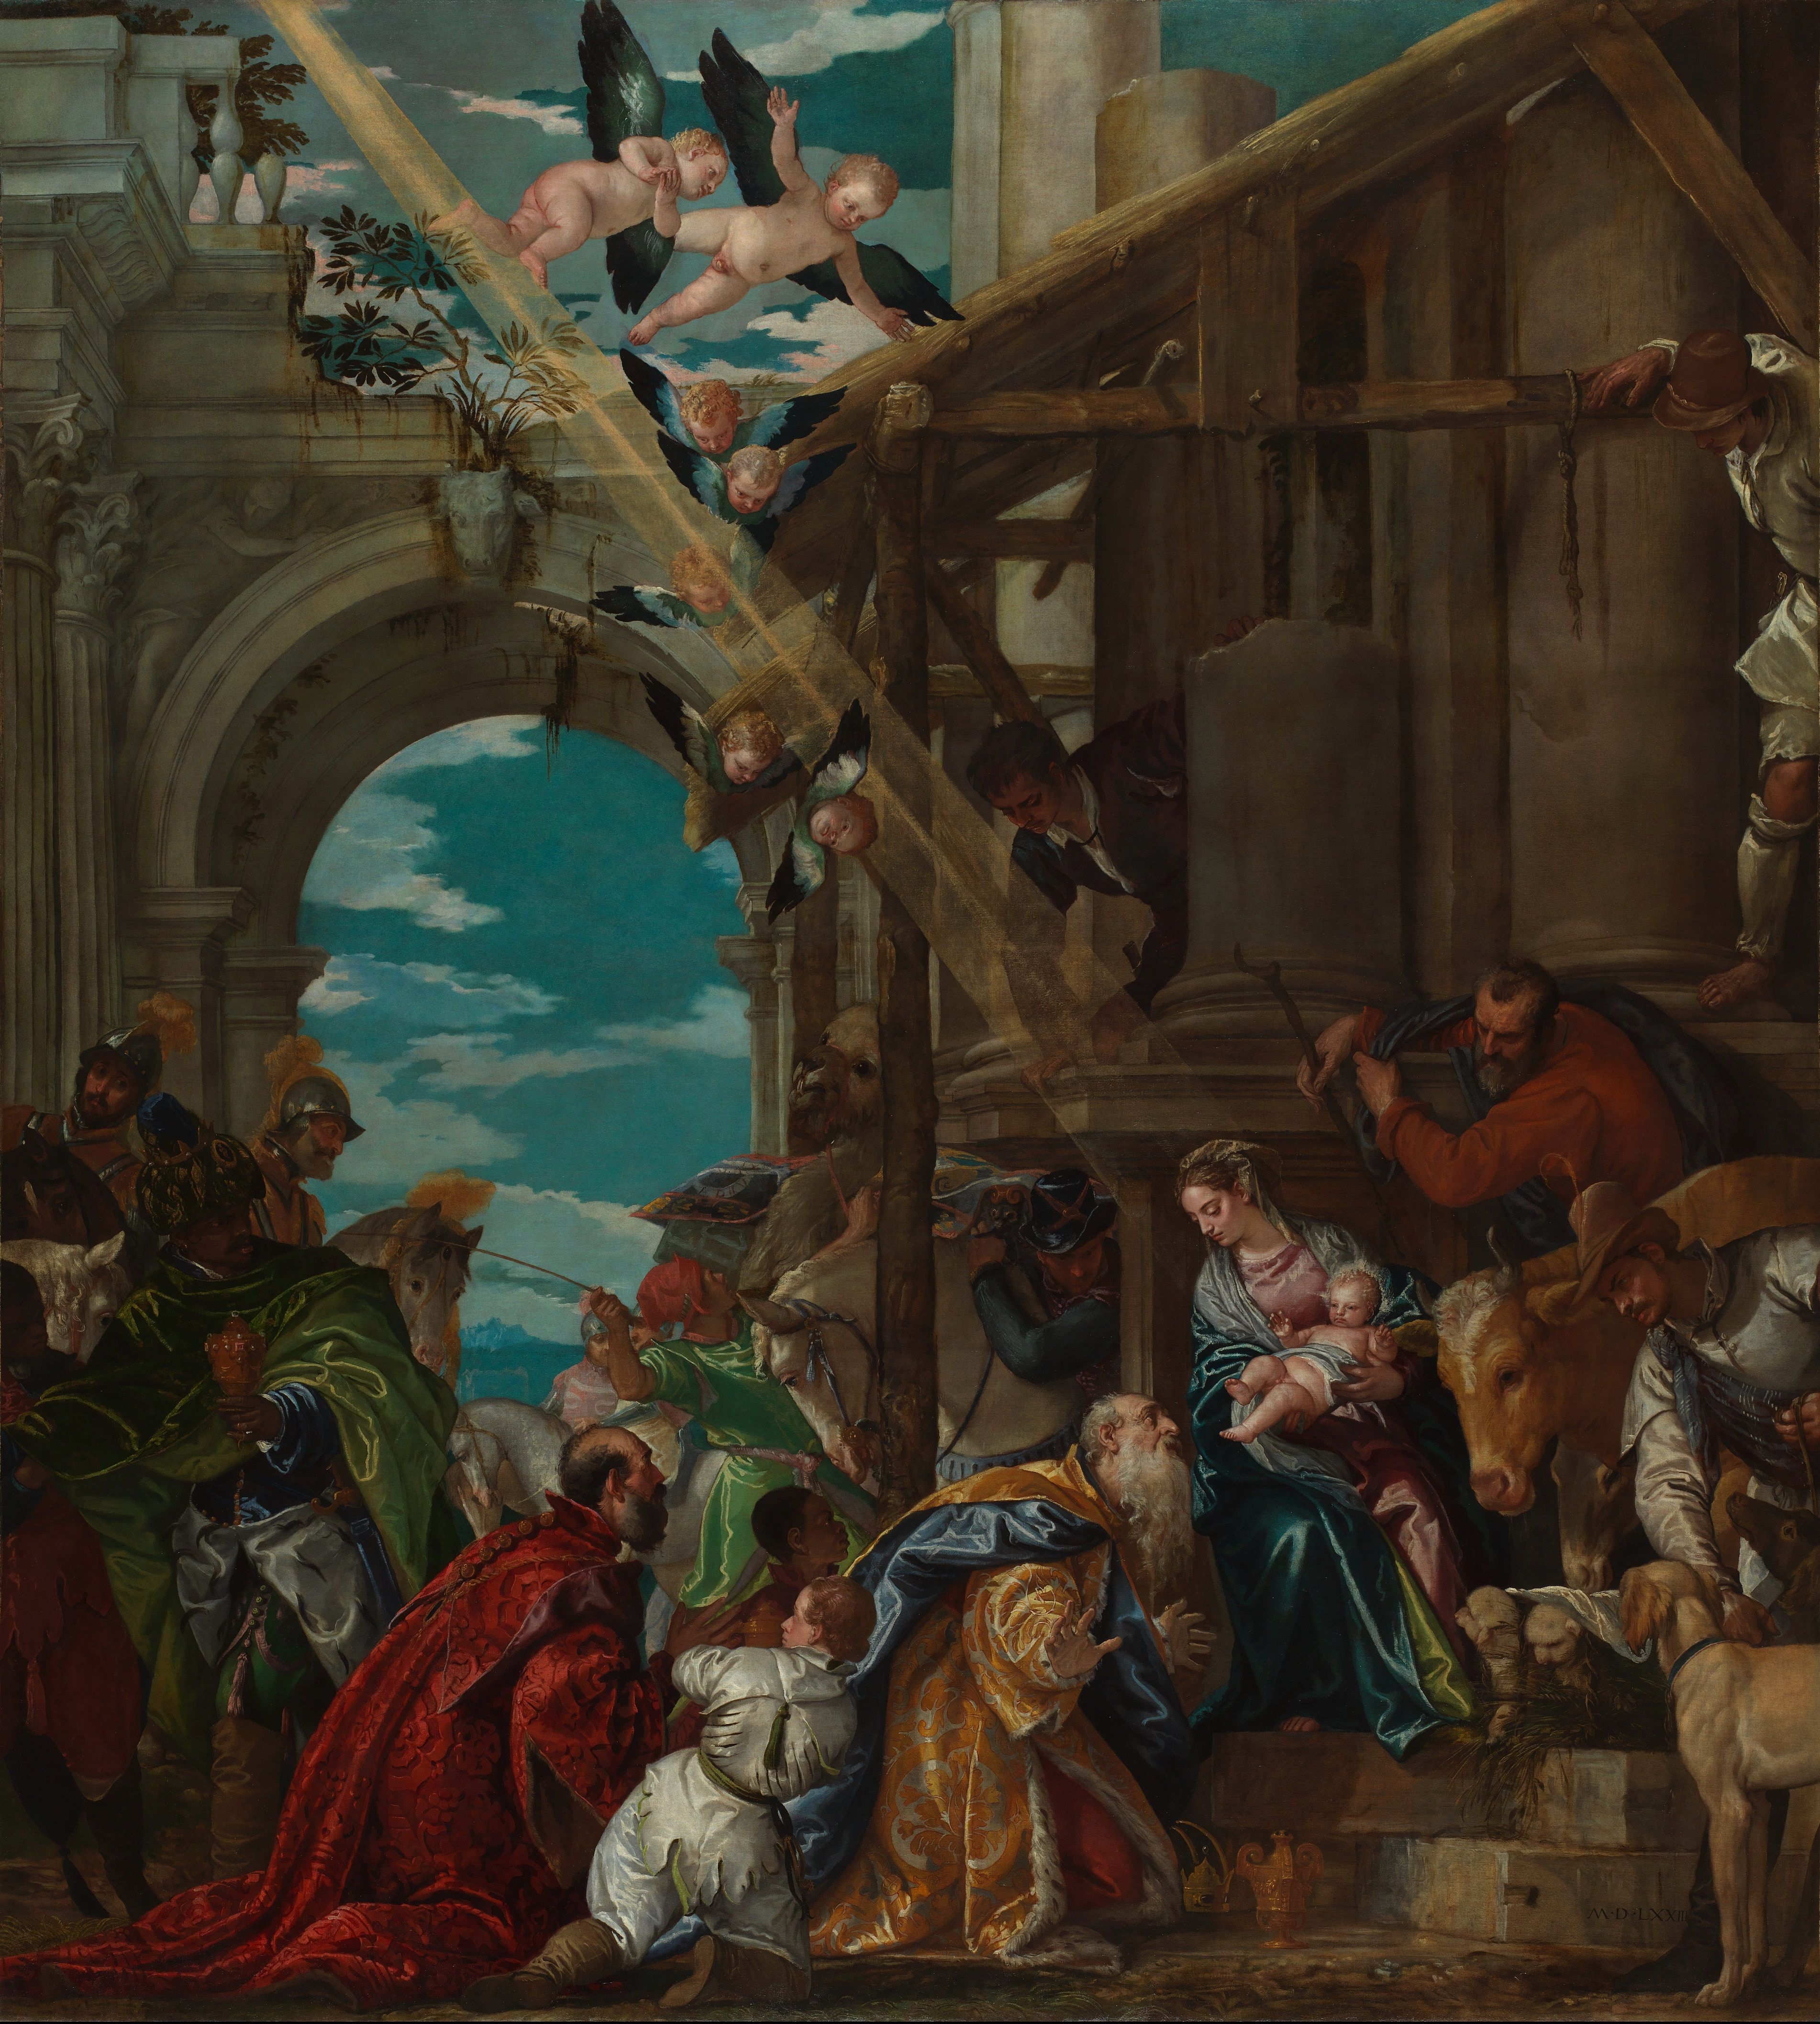 Paolo_Veronese_-_Adoration_of_the_Magi_-_National_Gallery.jpg (3804×4231)